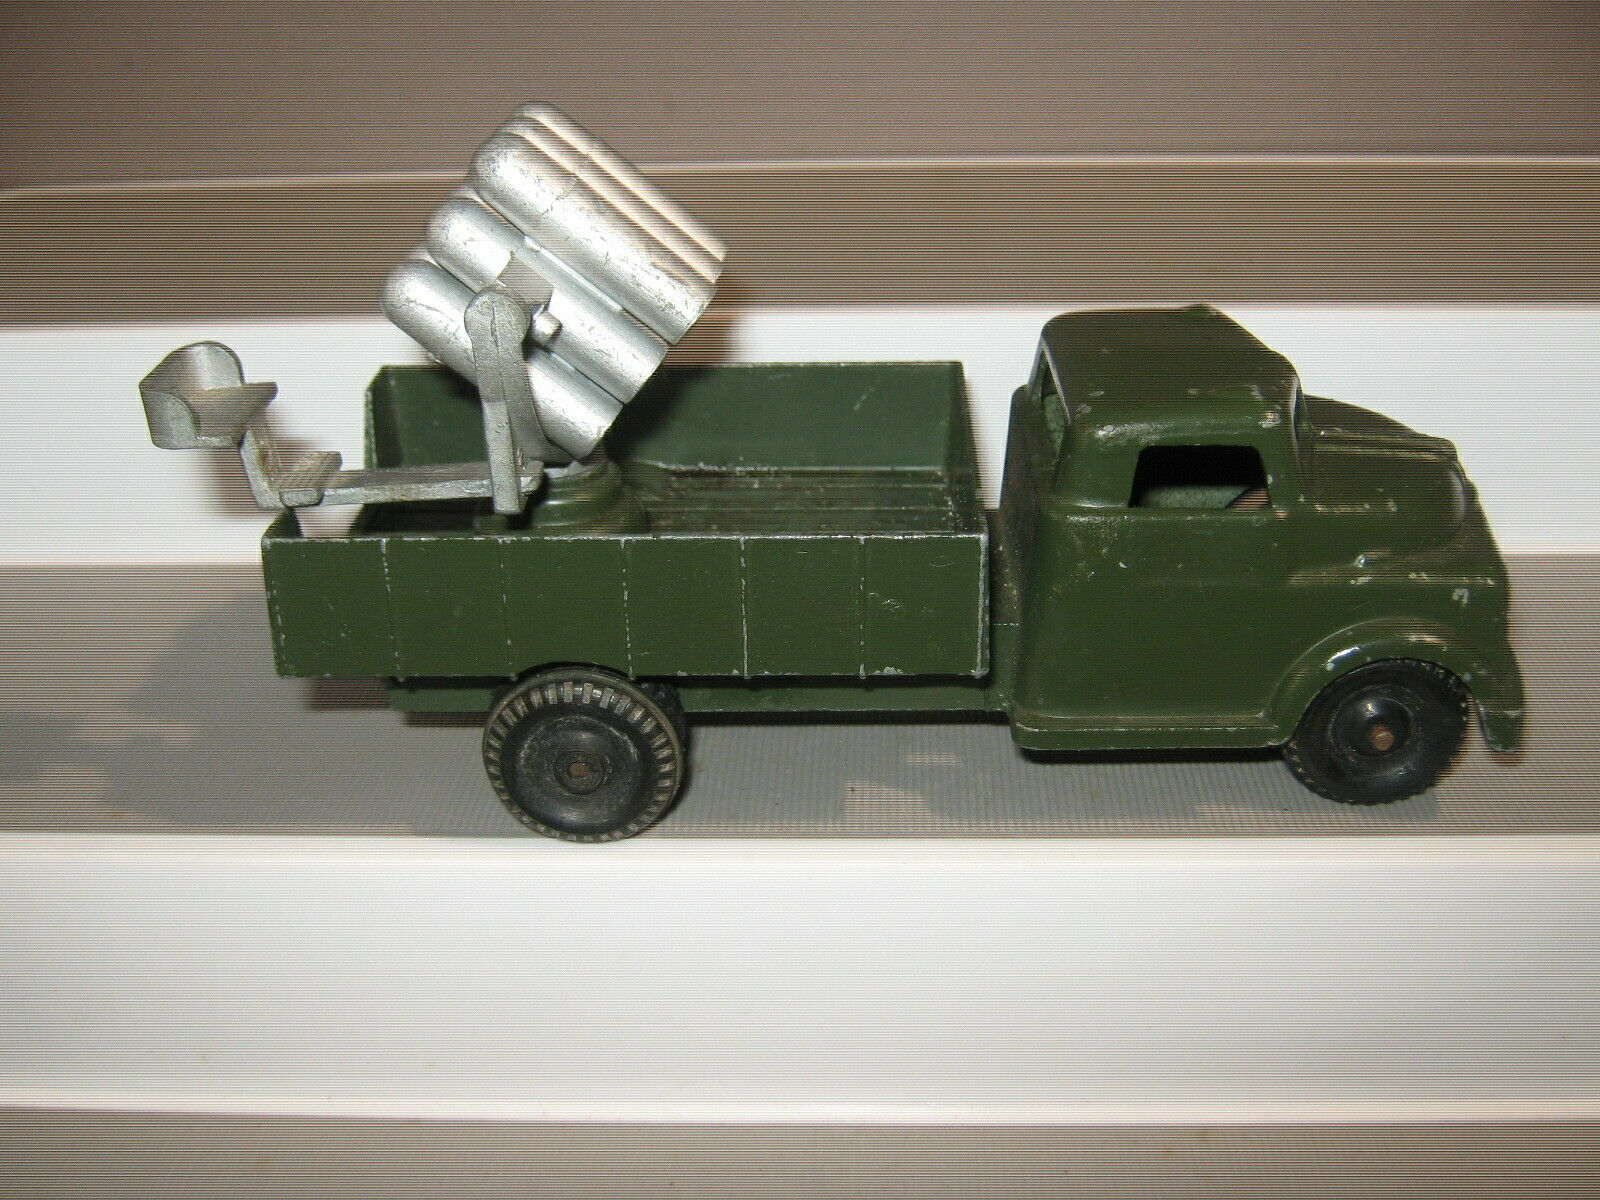 Lone star lorry multi rocket very good condition very slight ware rubber wheels